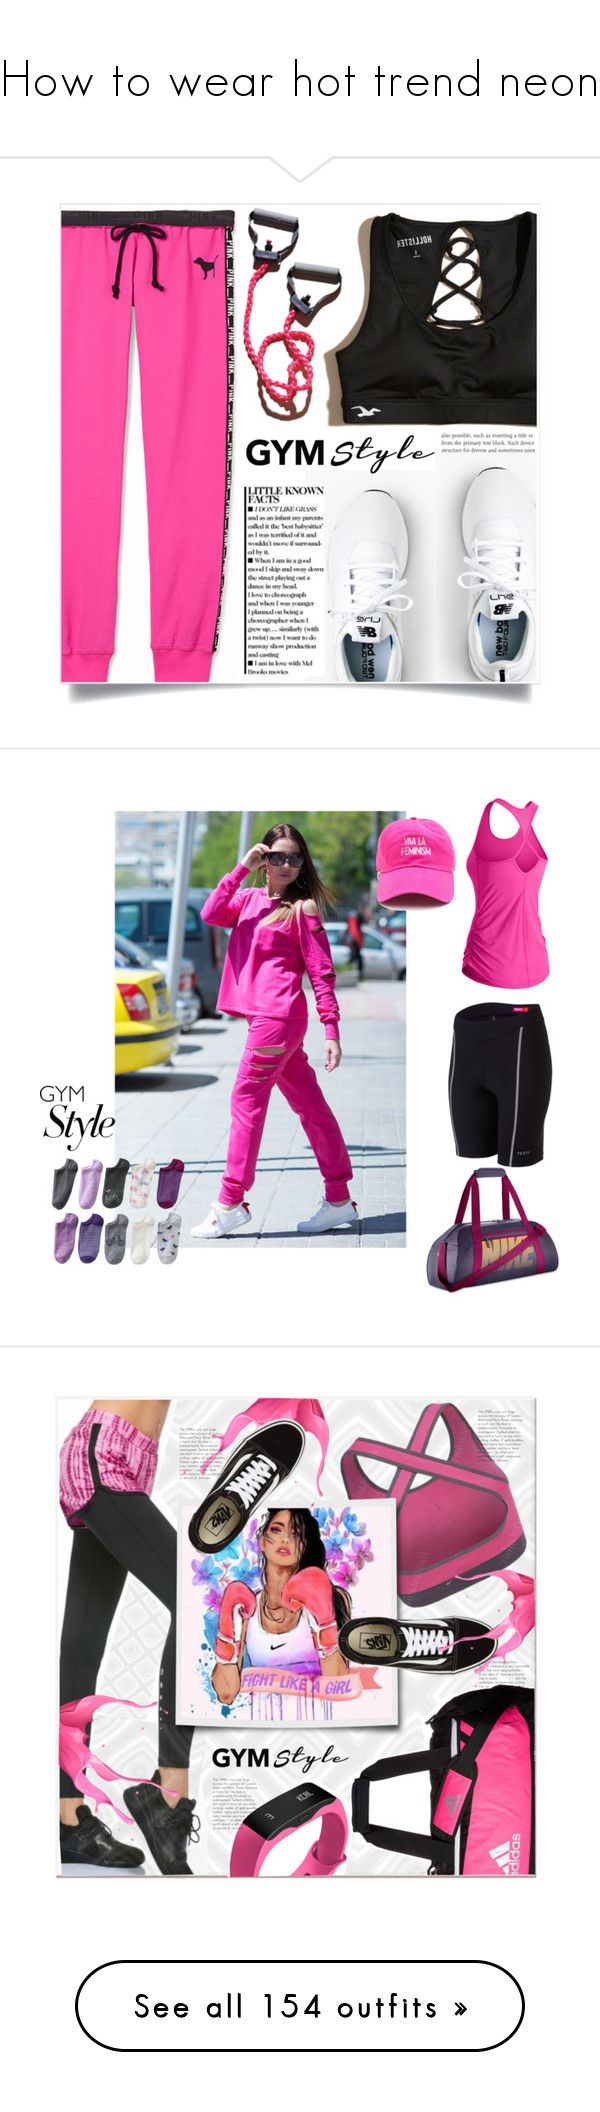 """""""How to wear hot trend neon"""" by yours-styling-best-friend ❤ liked on Polyvore featuring neon, Victoria's Secret PINK, Hollister Co., New Balance, gymessentials, Terry, NIKE, SONOMA Goods for Life, Vans and adidas"""